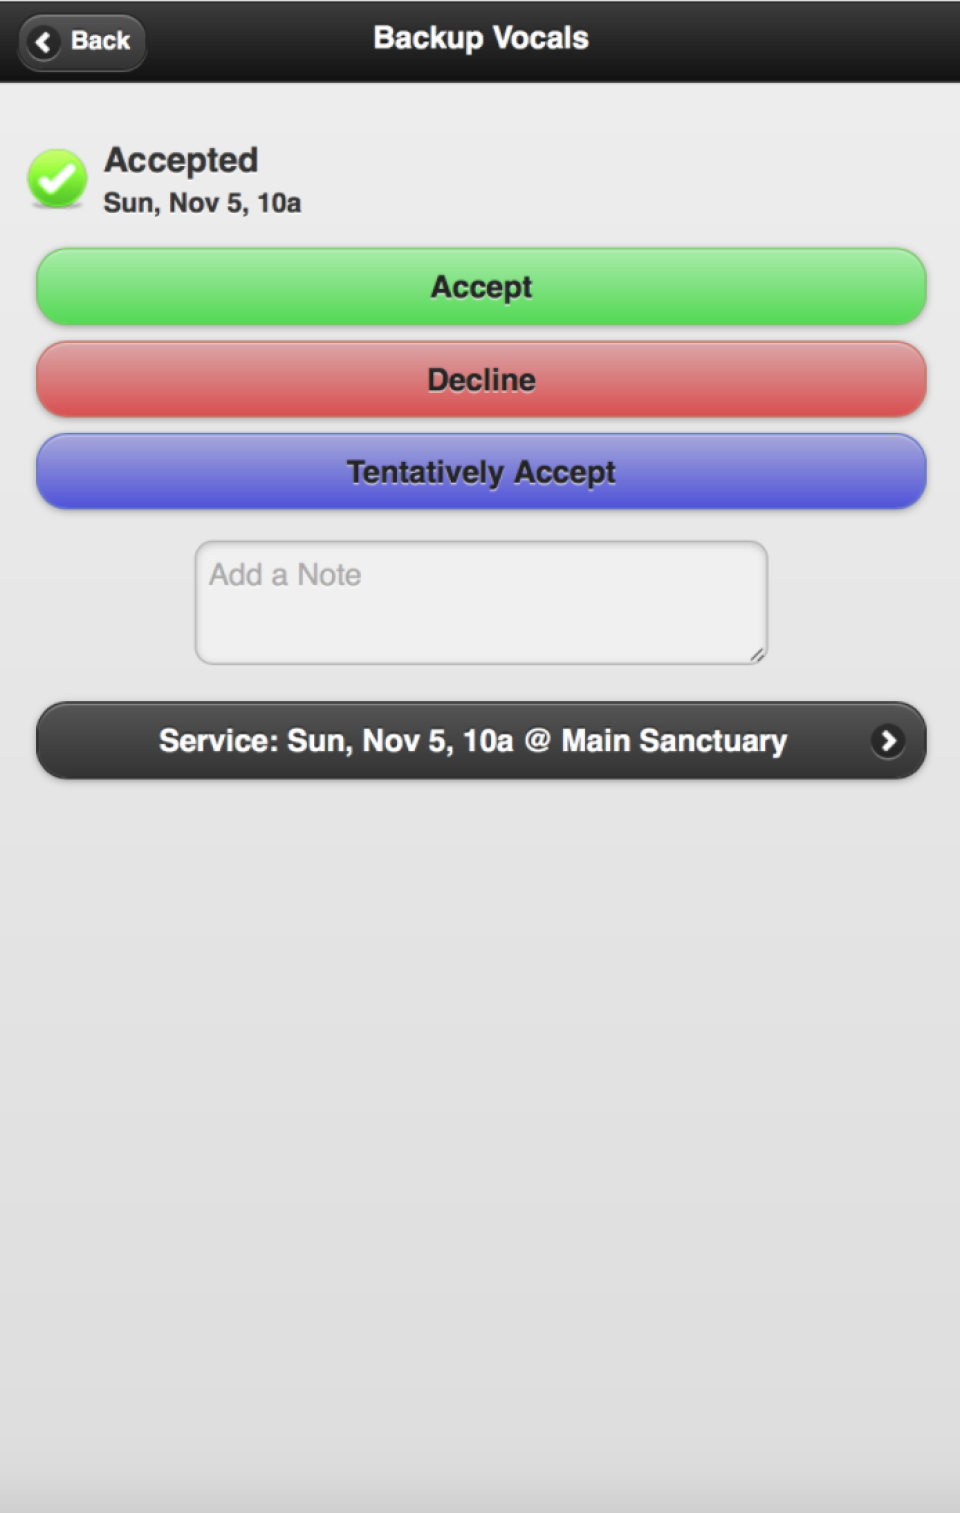 Volunteers are notified automatically when they are scheduled to serve, and can respond instantly